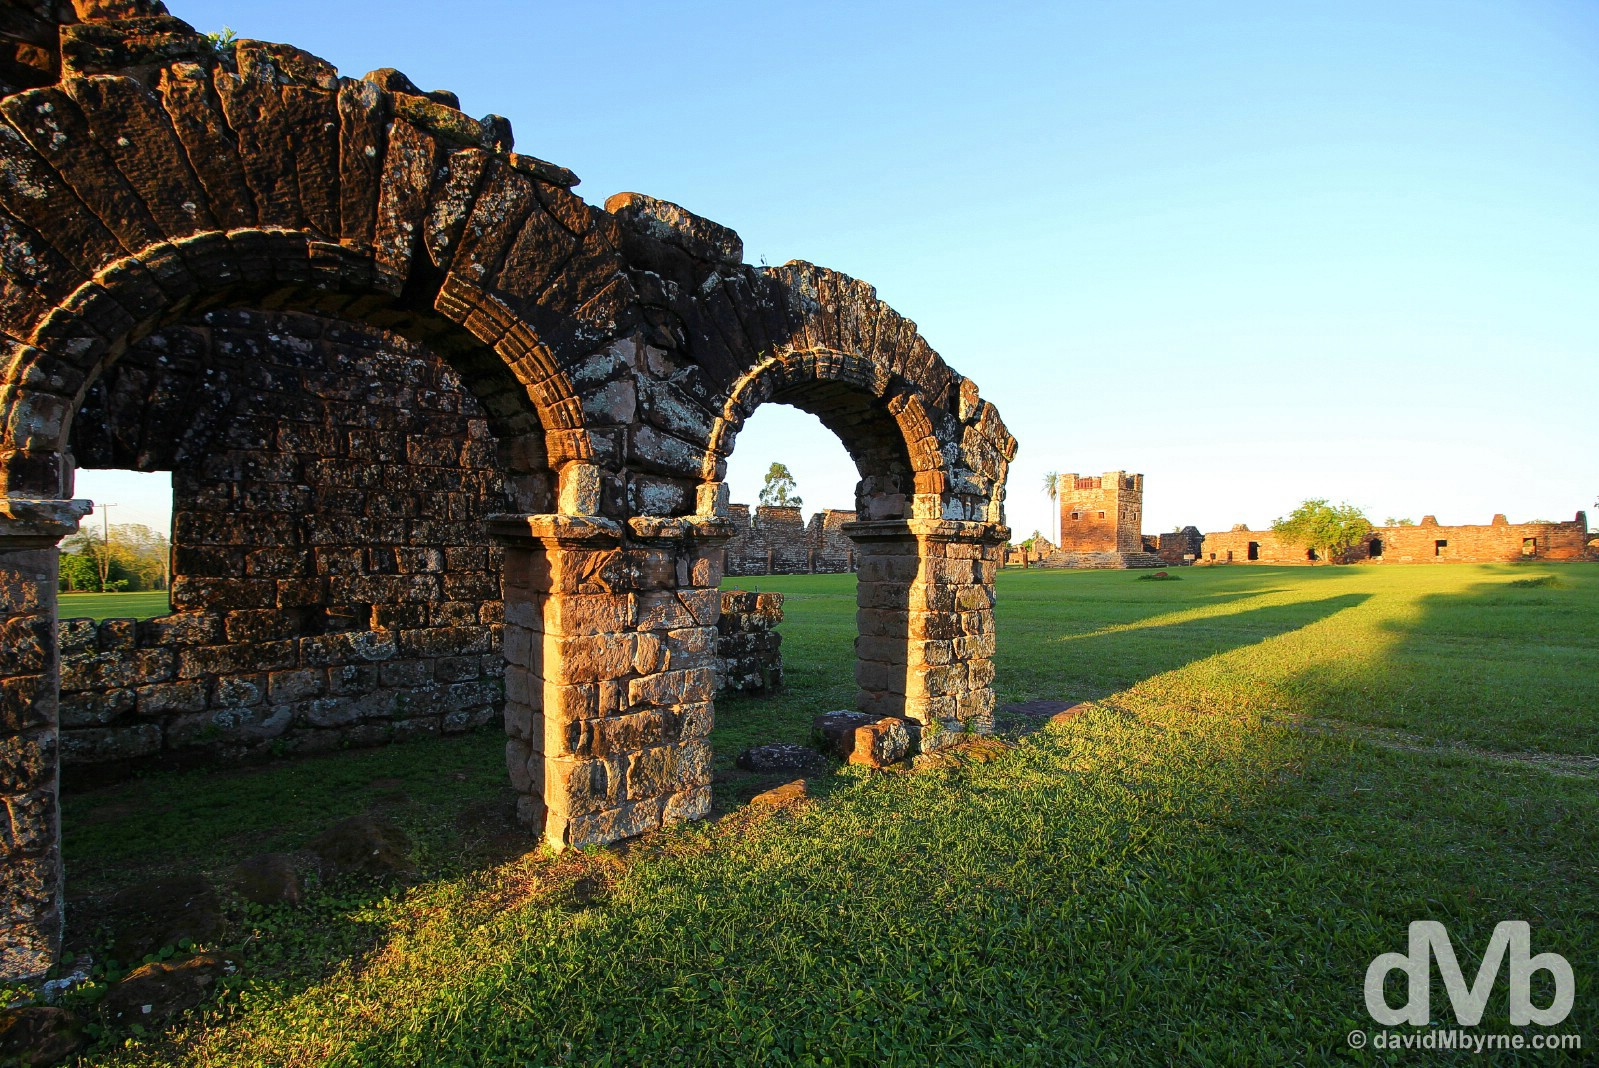 Sunset in the grounds of the UNESCO-listed Jesuit Mission of La Santísima Trinidad de Paraná, southern Paraguay. September 14, 2015.